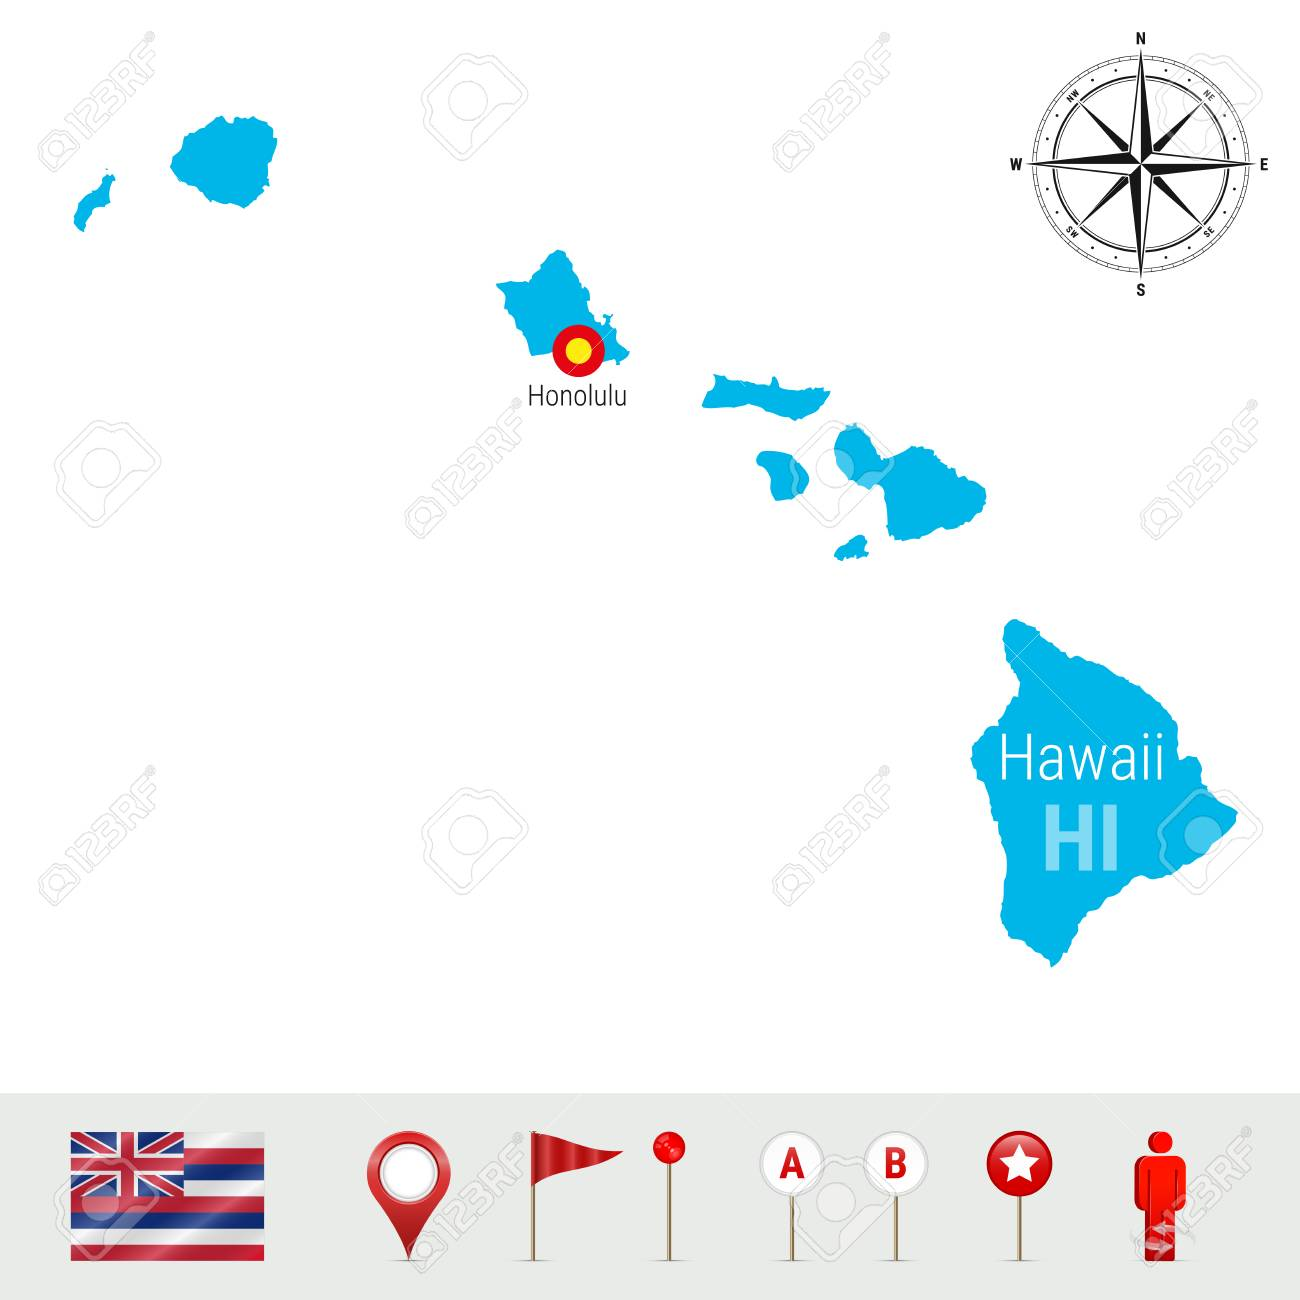 Hawaii Vector Map Isolated On White Background High Detailed